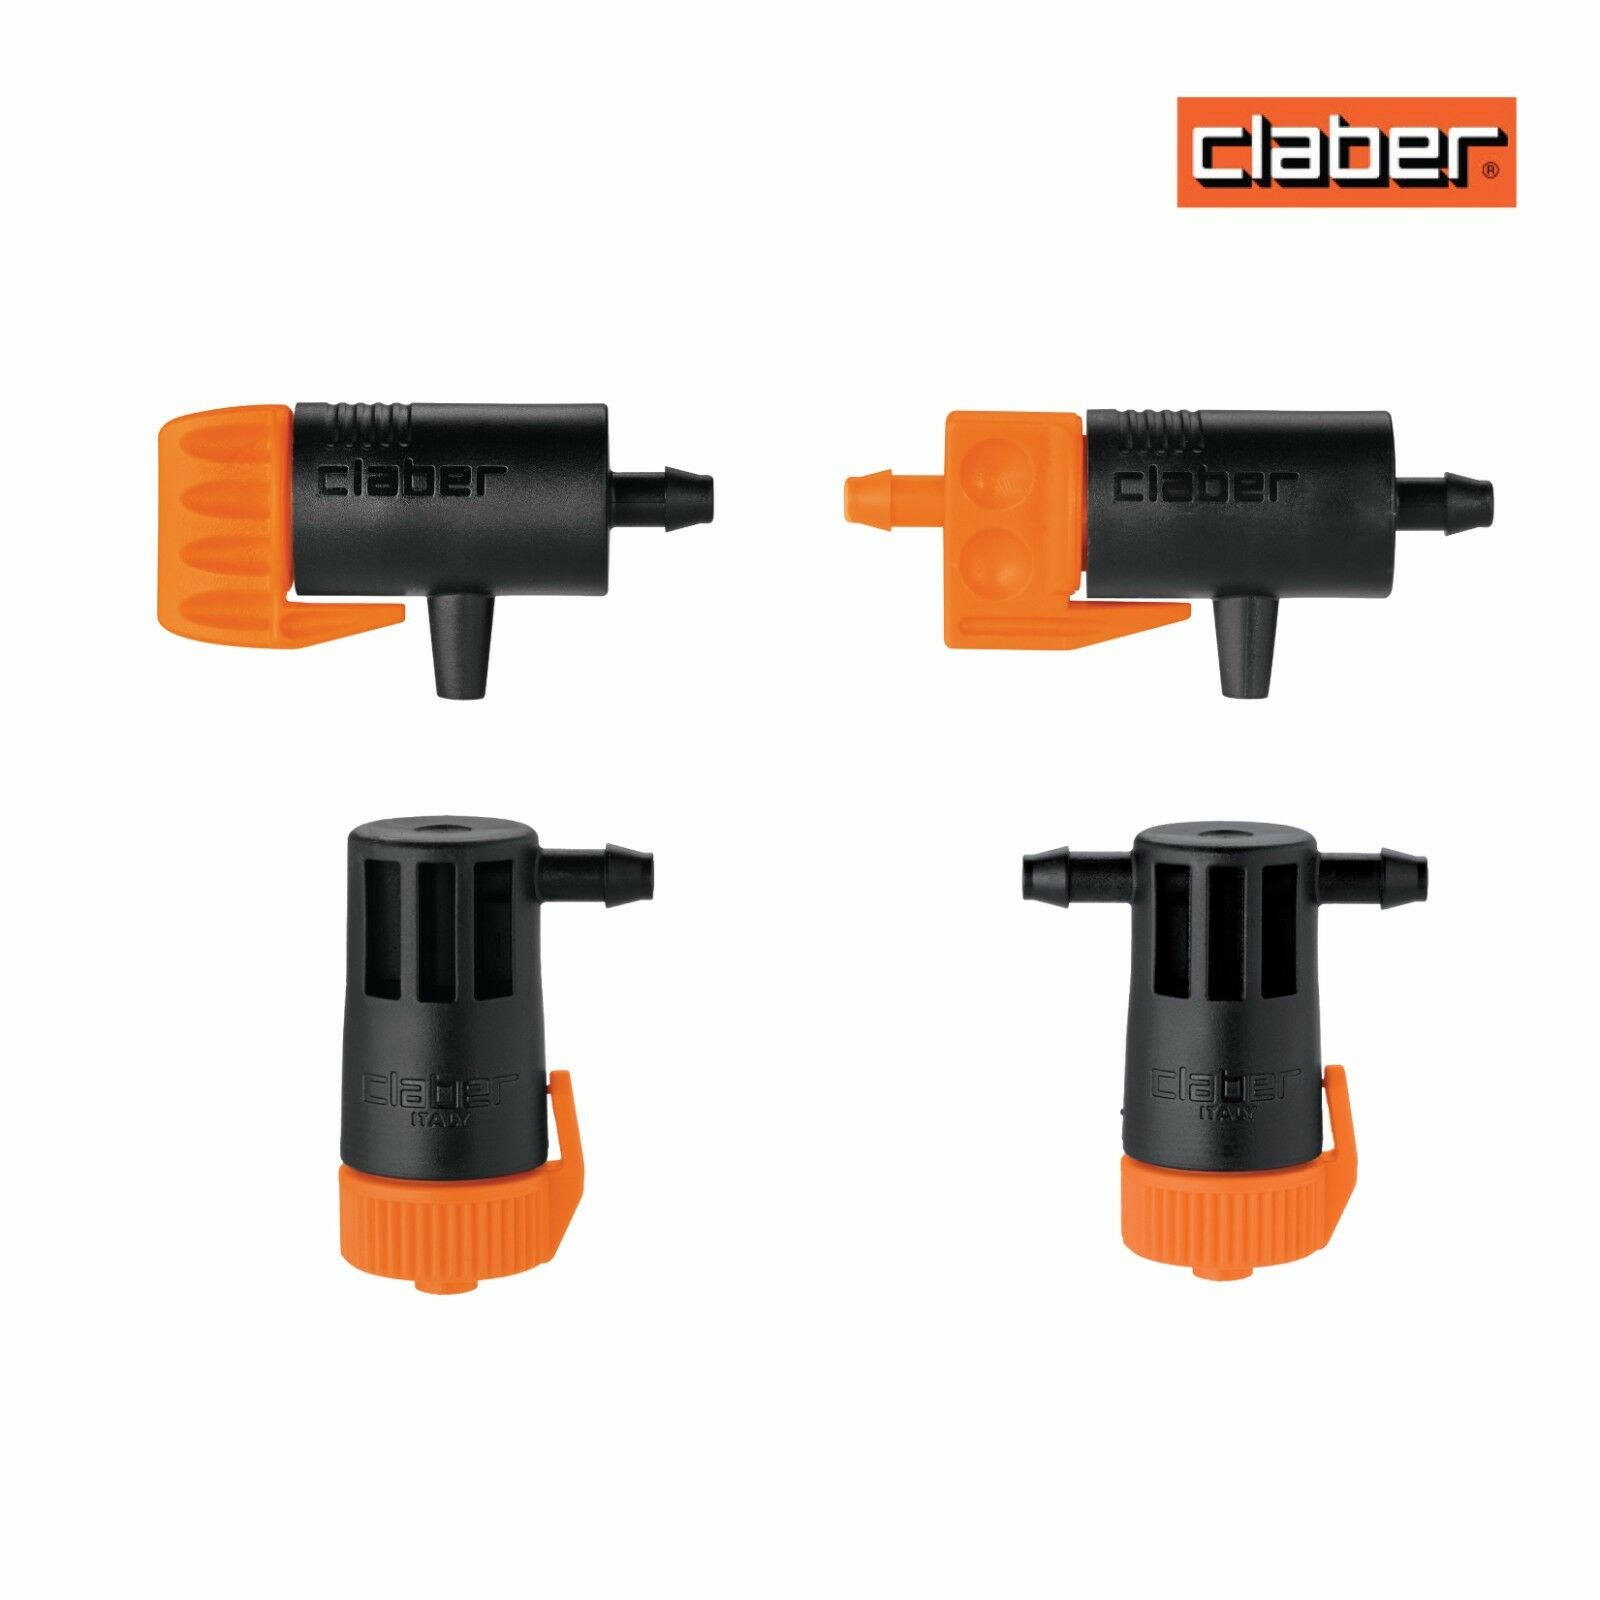 Claber Drippers In Line & End of Line - Hozelock compatible. Drip Irrigation